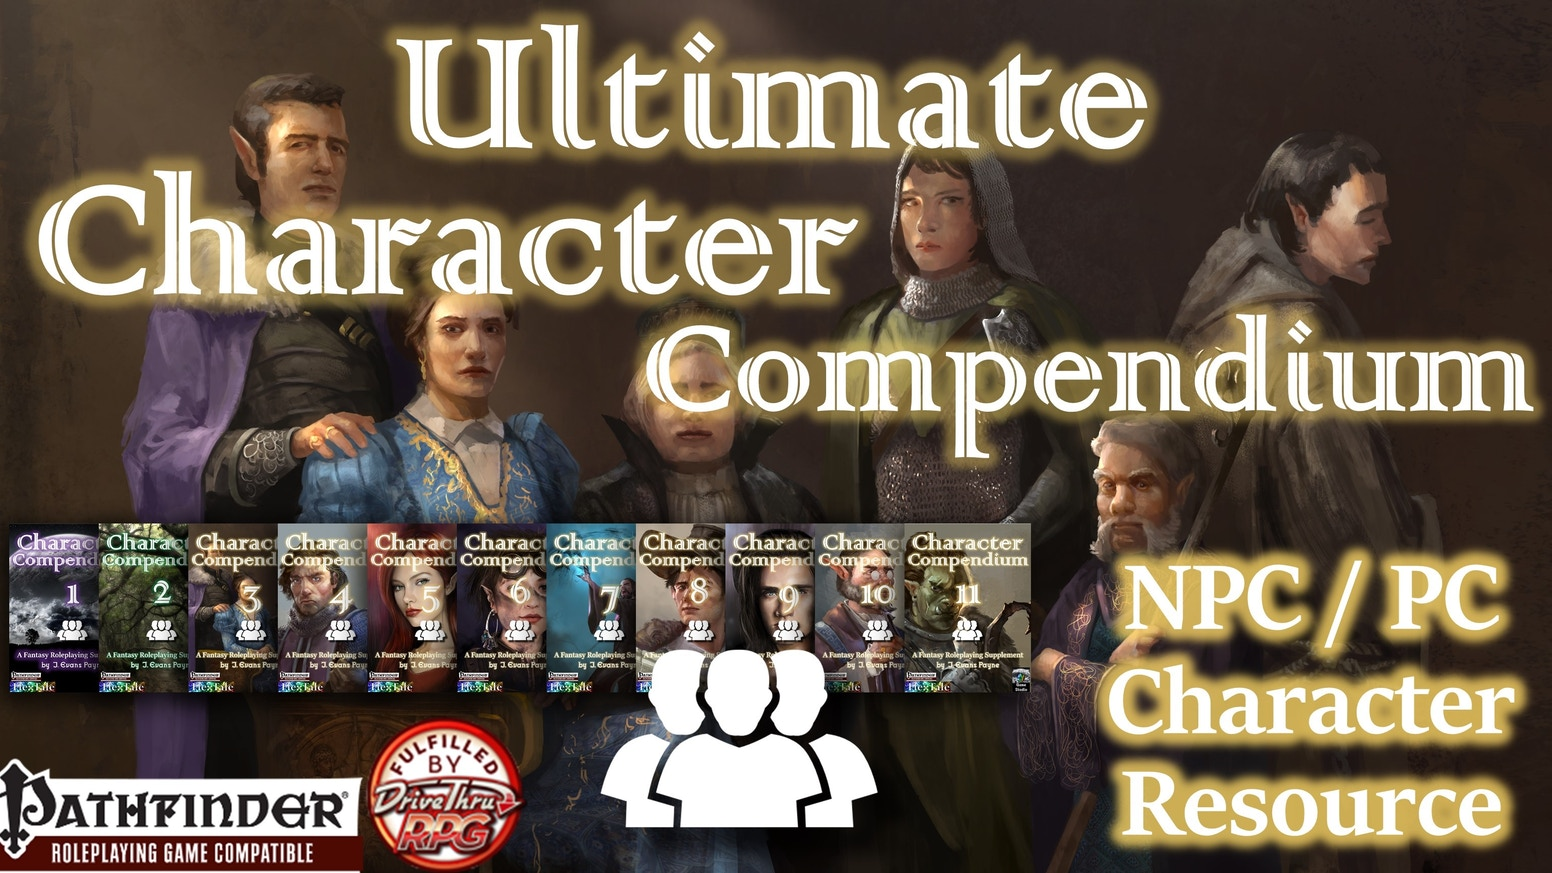 More than 4,000 ready-to-play NPCs for Pathfinder, featuring nearly 1,000 archetypes, classes, races, and more, for Pathfinder RPG.